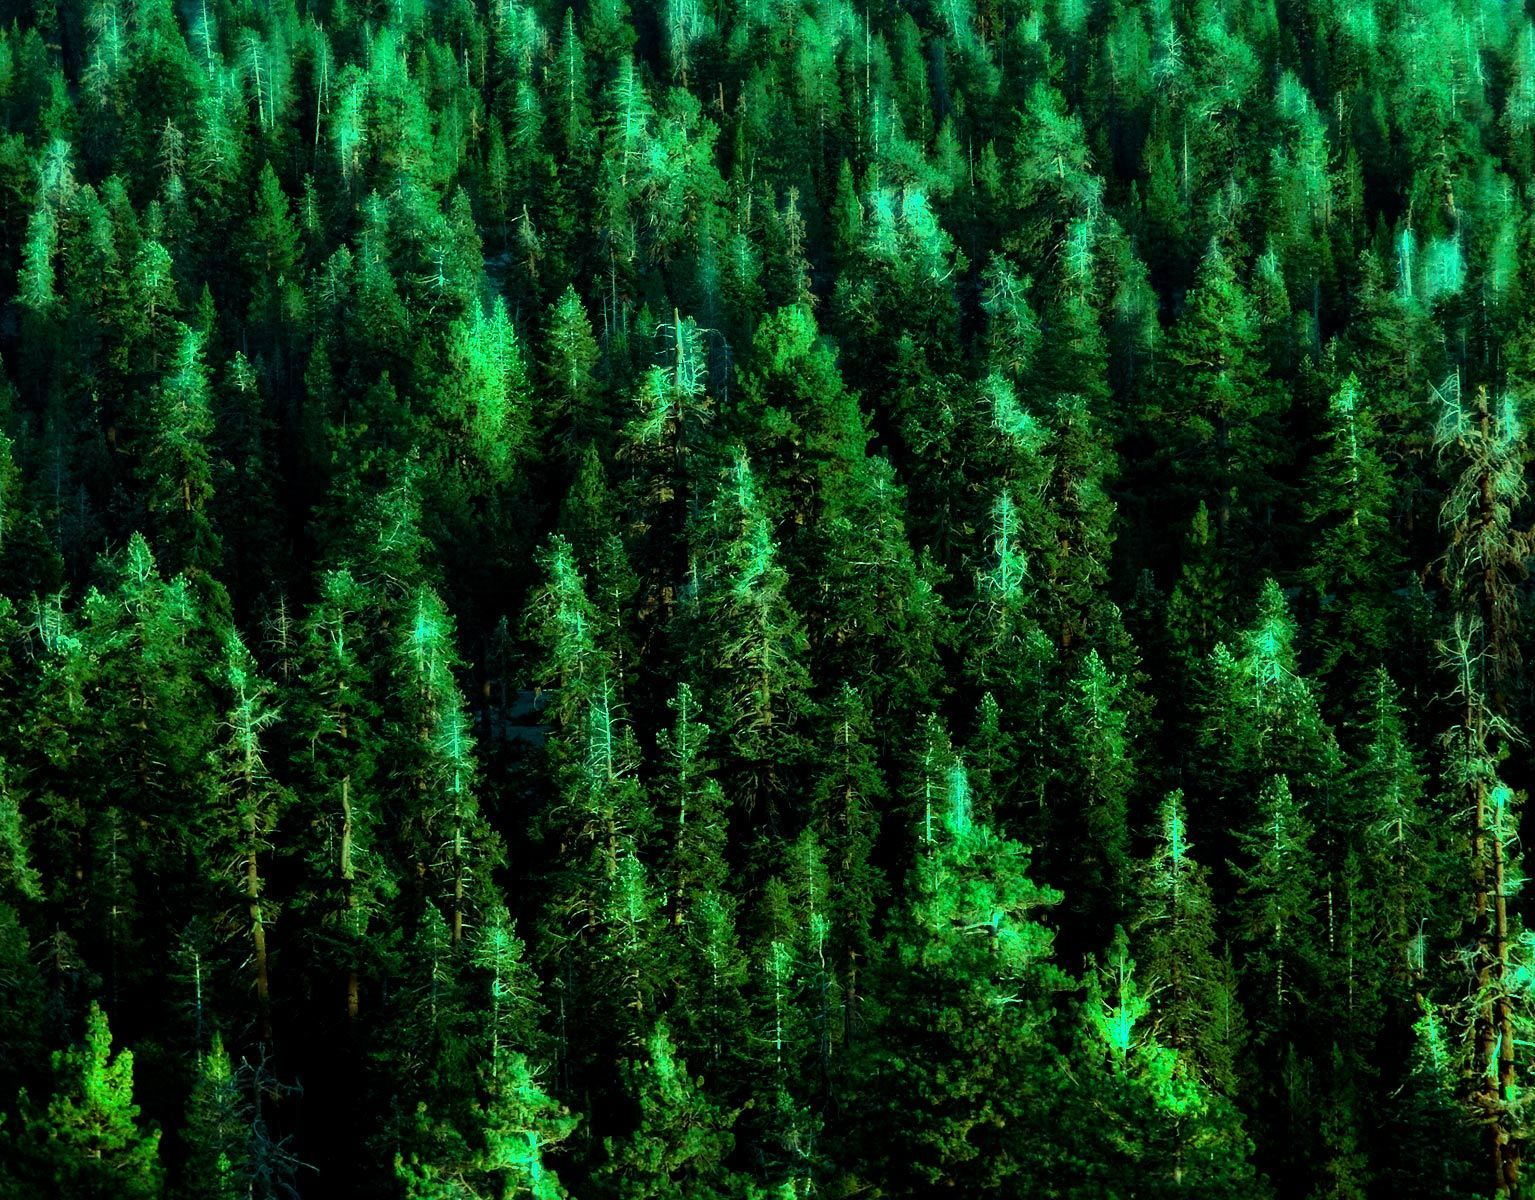 1yosemite_pineforest.jpg